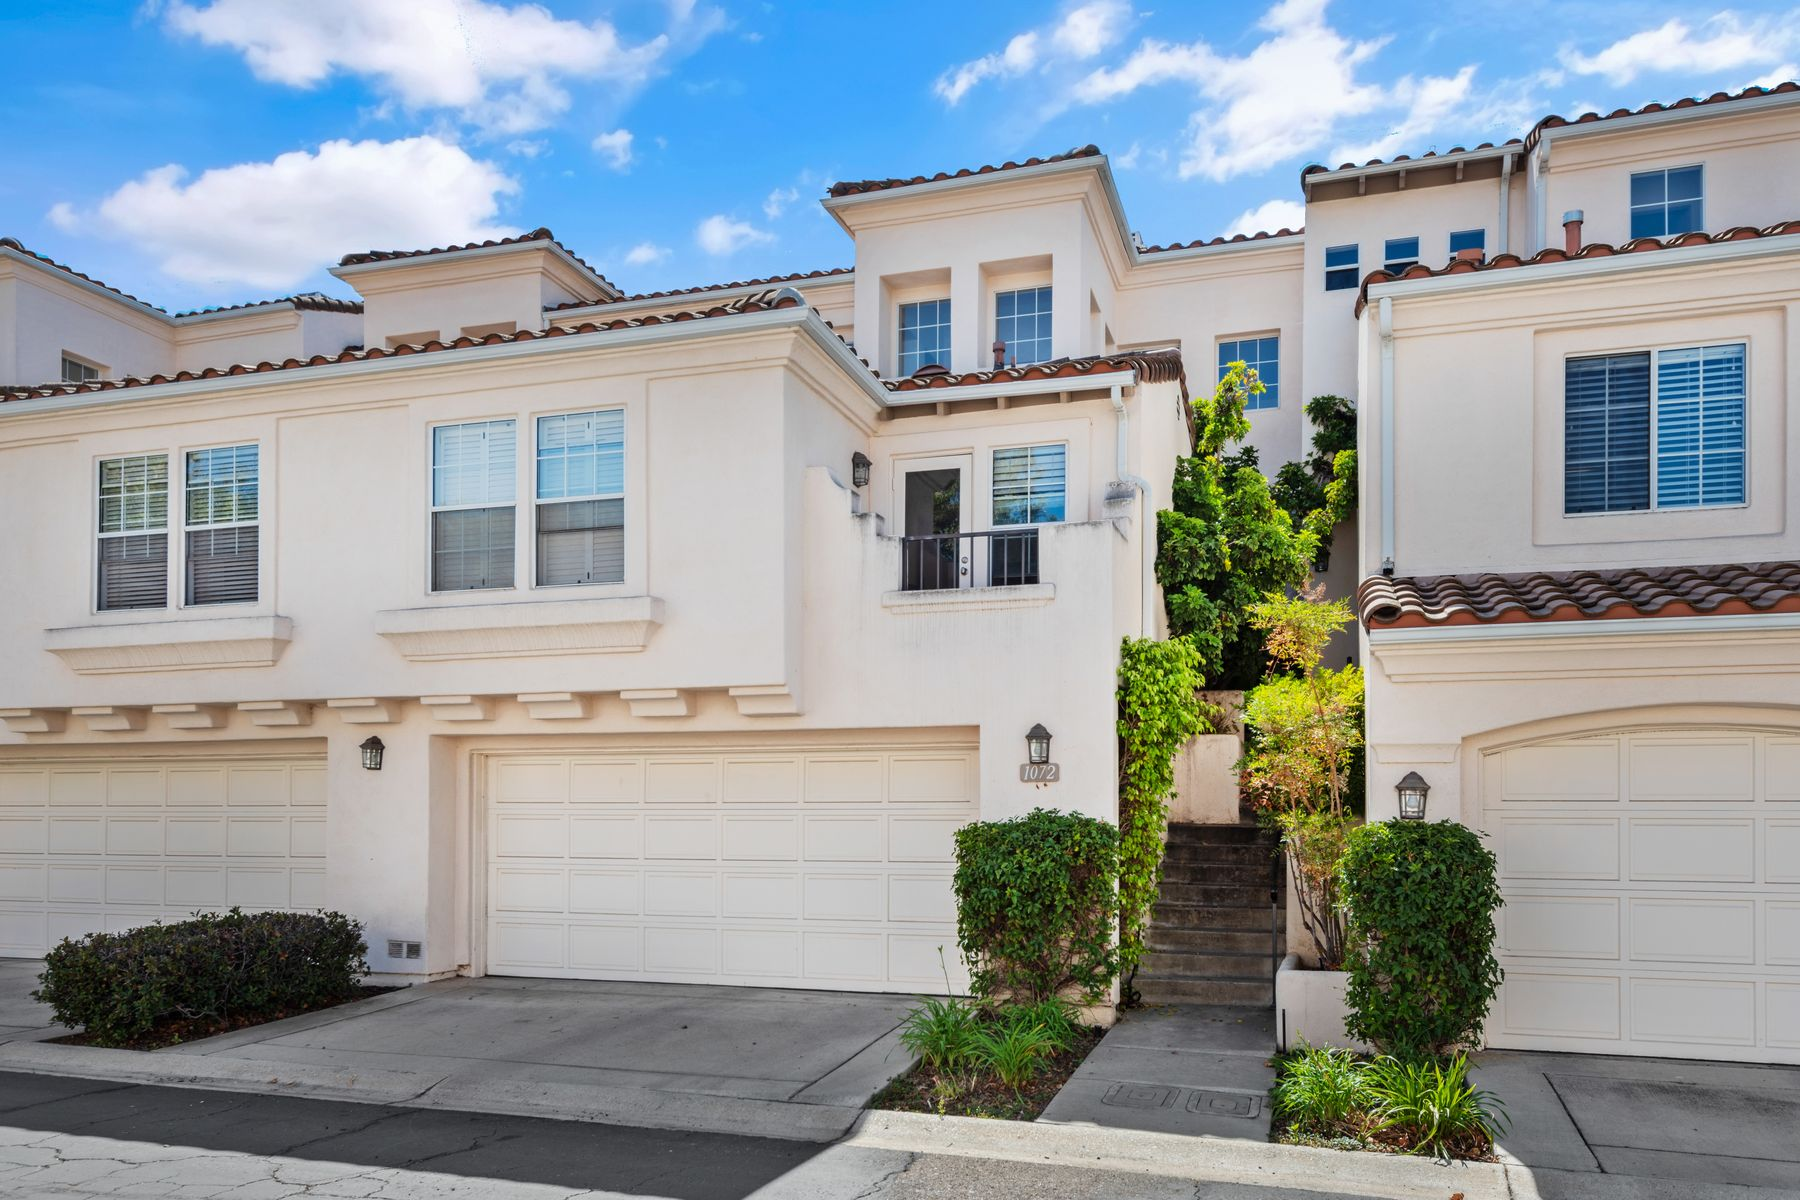 townhouses for Sale at Beautiful Contemporary Town Home 1072 Mountain Oak Place Newbury Park, California 91320 United States